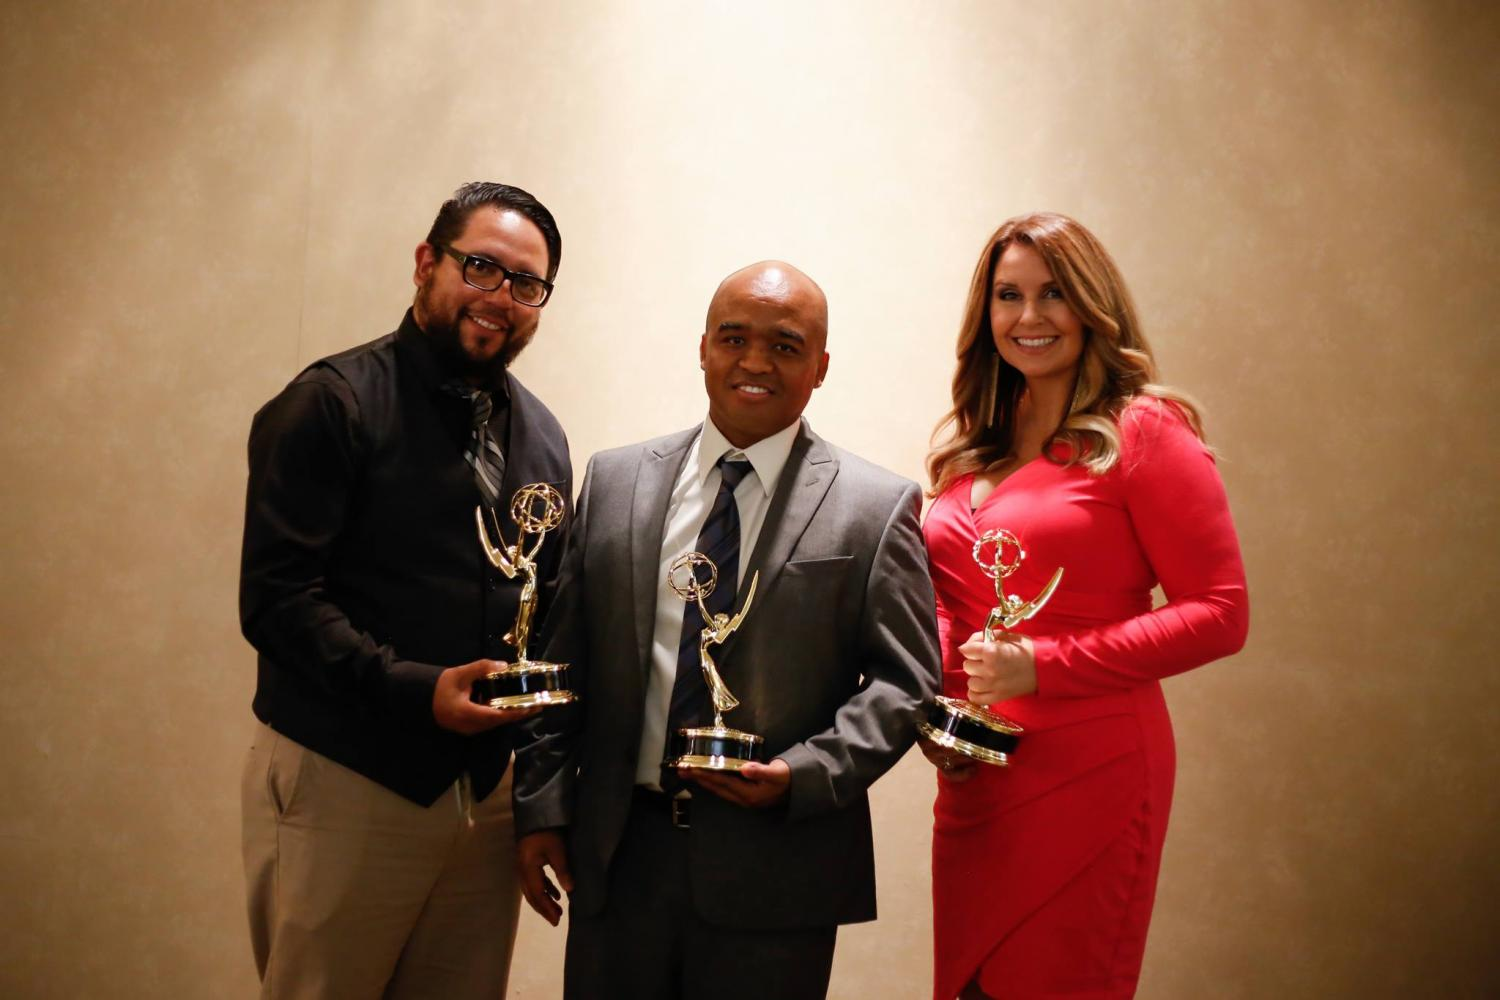 San Diego Union Tribune, EMMYS, Emmy Award, City College, City Times, Mike Madriaga, Alejandro Tamayo, David Brooks, Sharon Heilbrunn, Multimedia, UT, Award Ceremony, 2017, 2016, SDCCD, MMJ, Video, Chargers